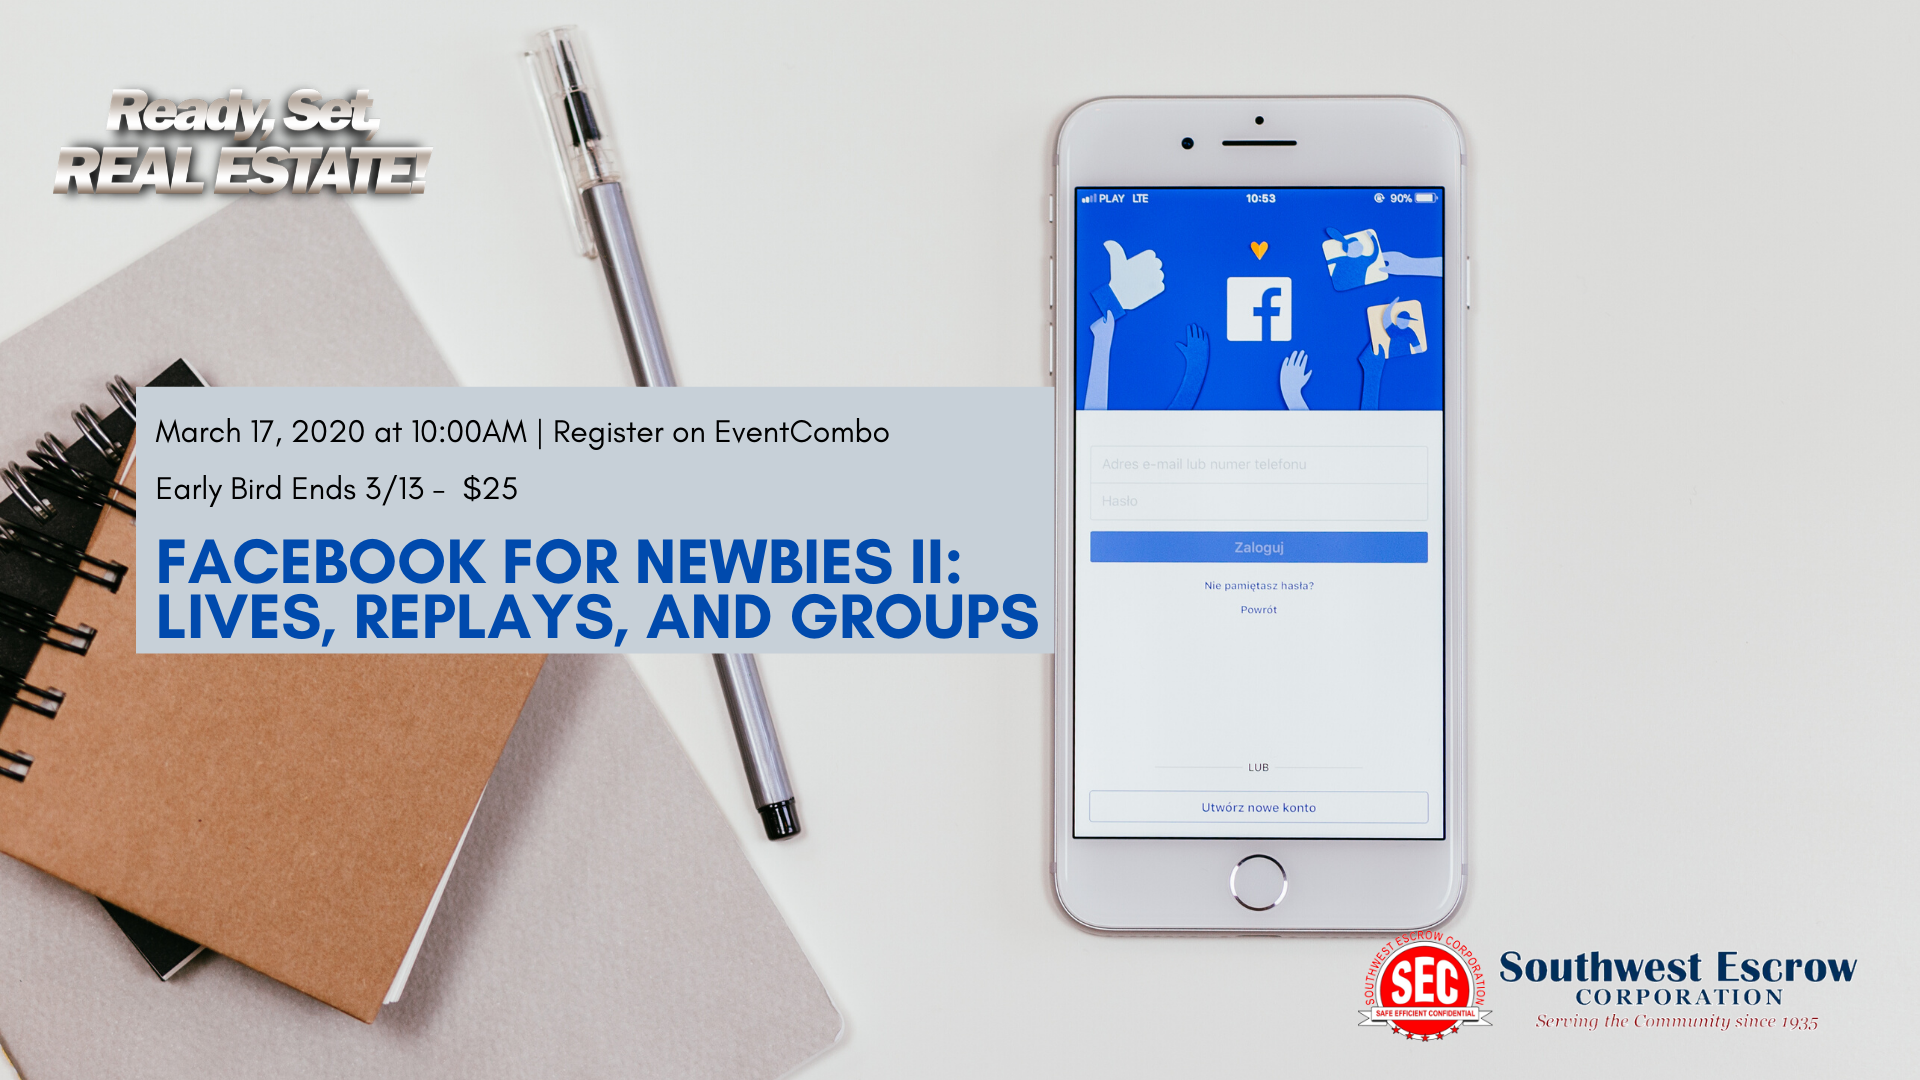 Facebook for Newbies II: Lives, Replays, and Groups